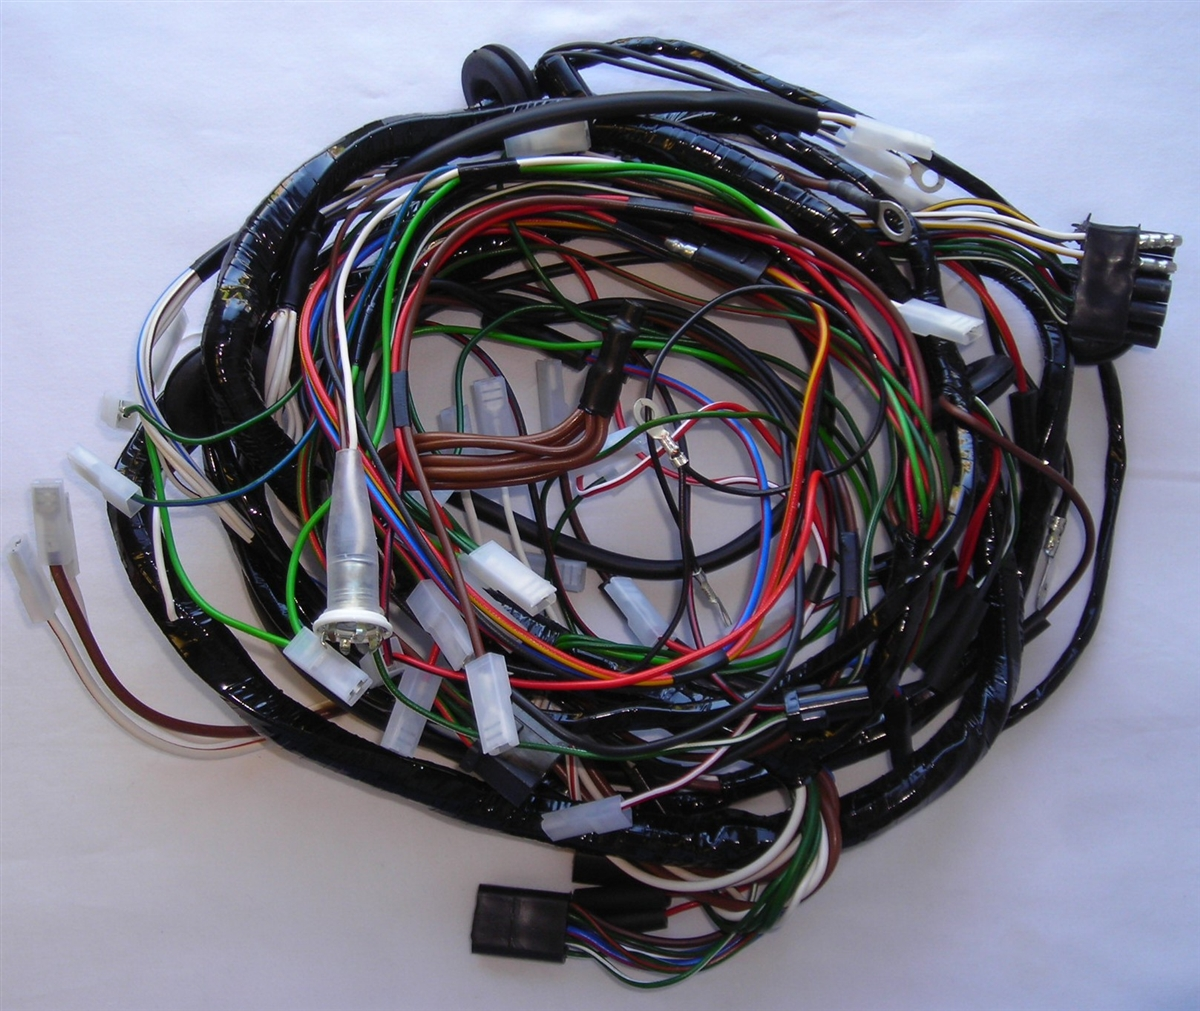 hight resolution of land rover series 3 main wiring harness land rover defender wiring harness rover wiring harness